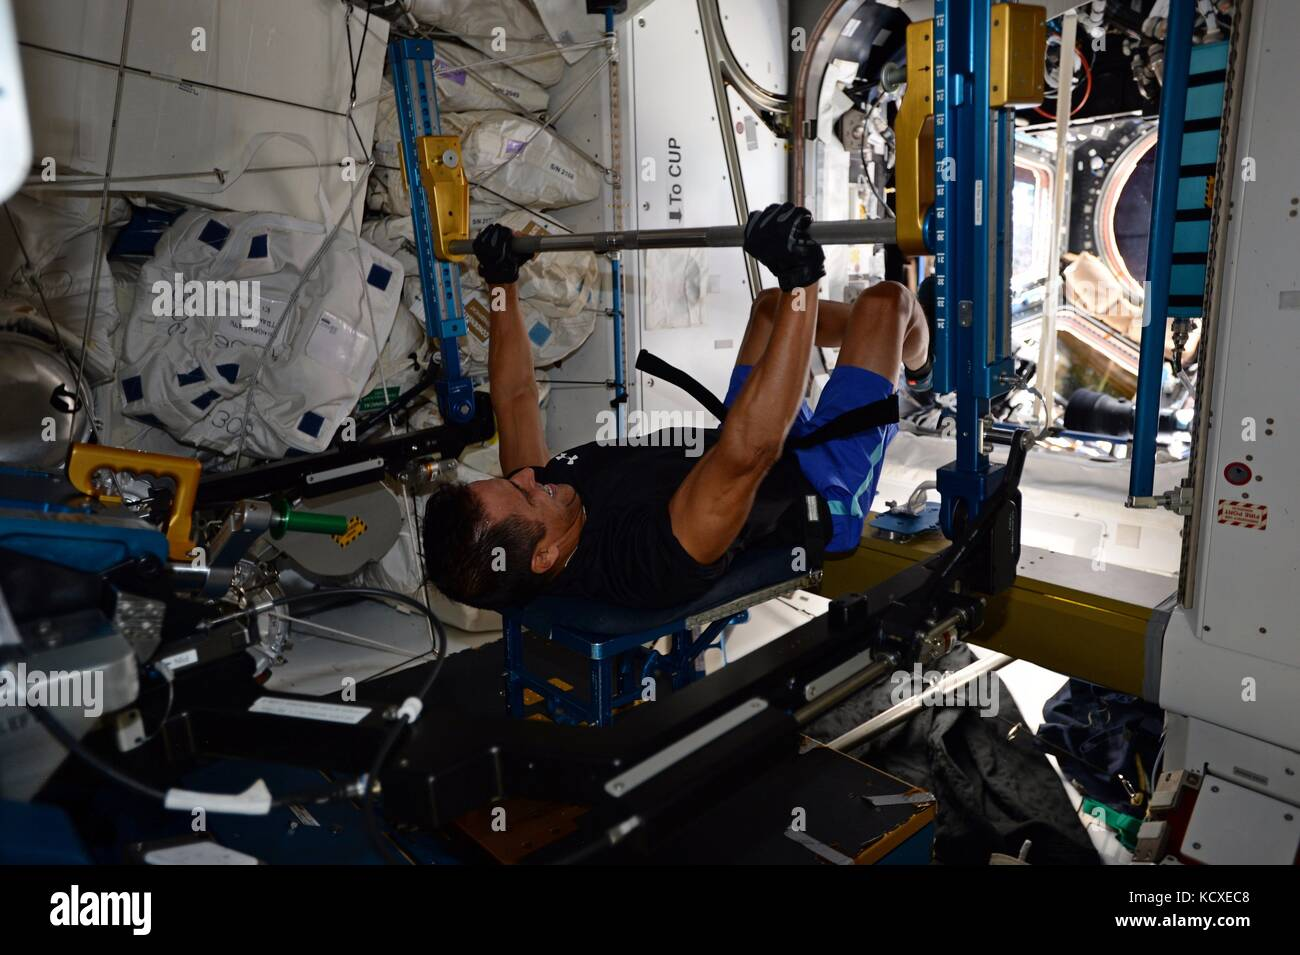 Expedition 53 L'astronaute américain Joe acaba pendant la formation de poids à bord de la station Photo Stock